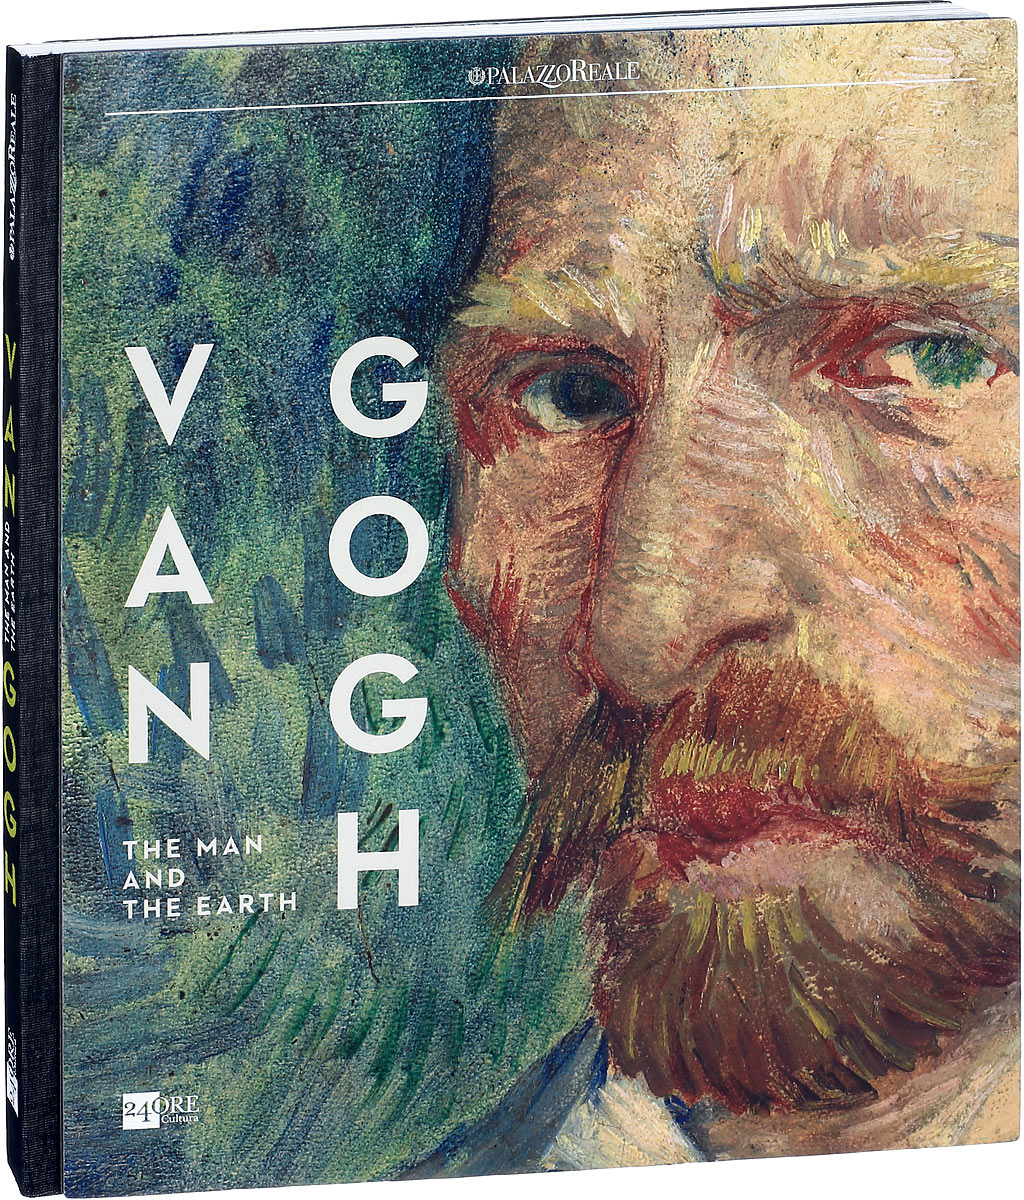 Van Gogh: The Man and the Earth the watercolourist